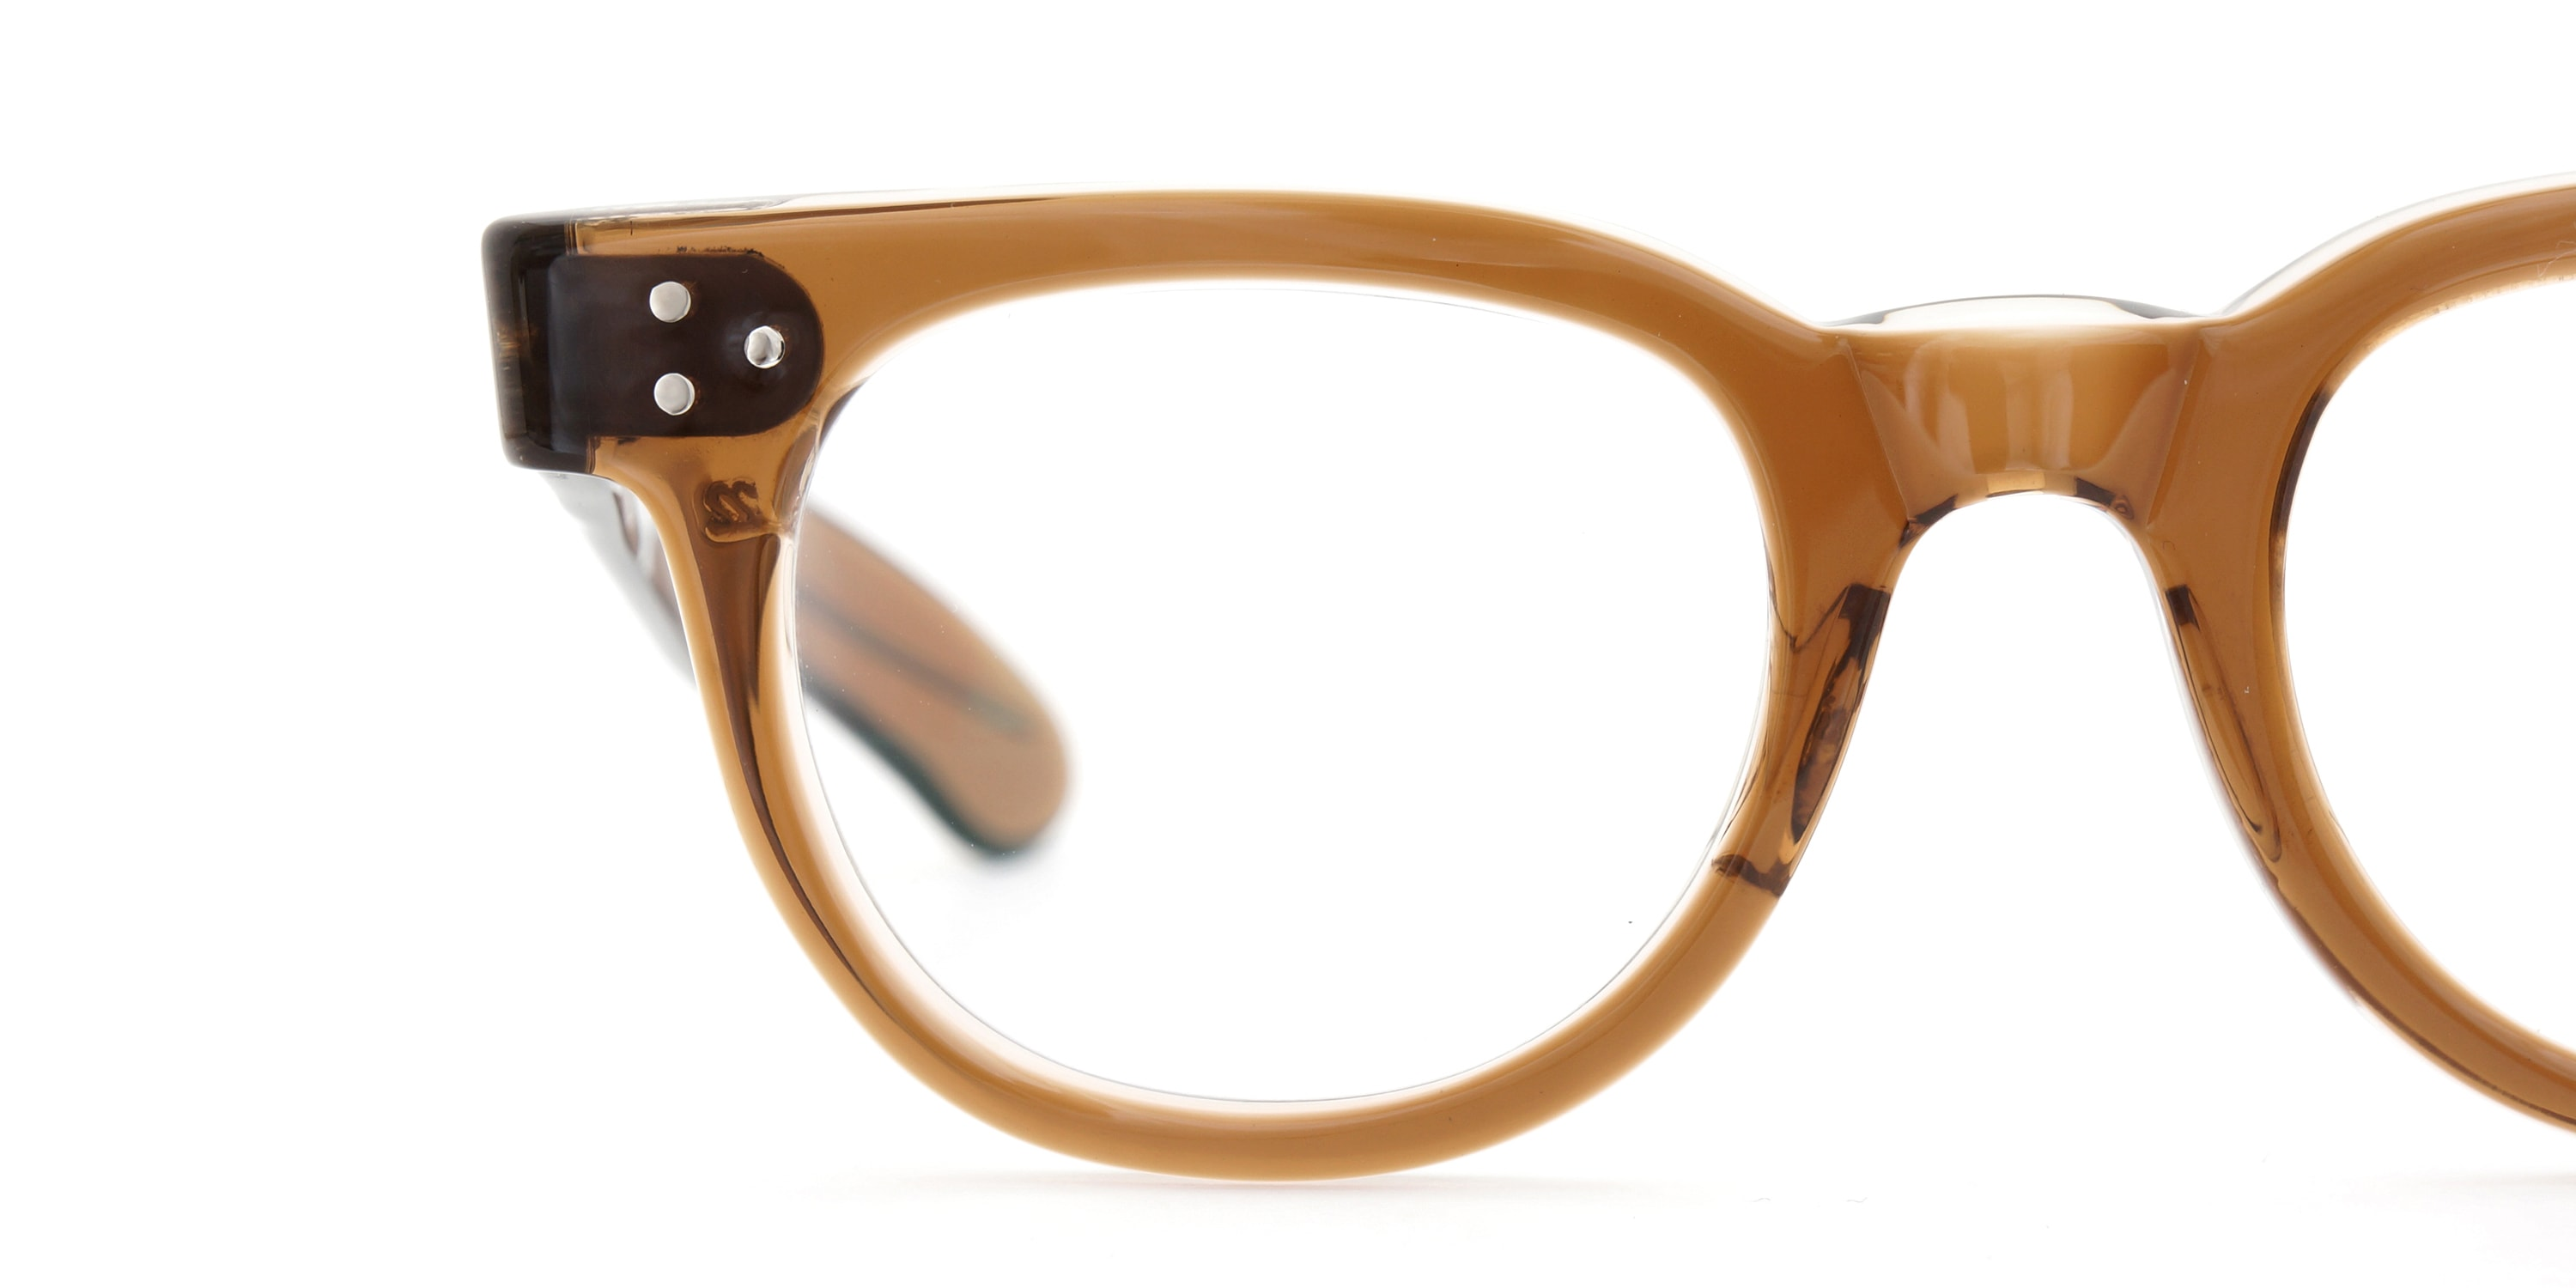 The Spectacle メガネ 1950s-70s TART OPTICAL FDR (FRAME USA) BROWN 44-22 イメージ18